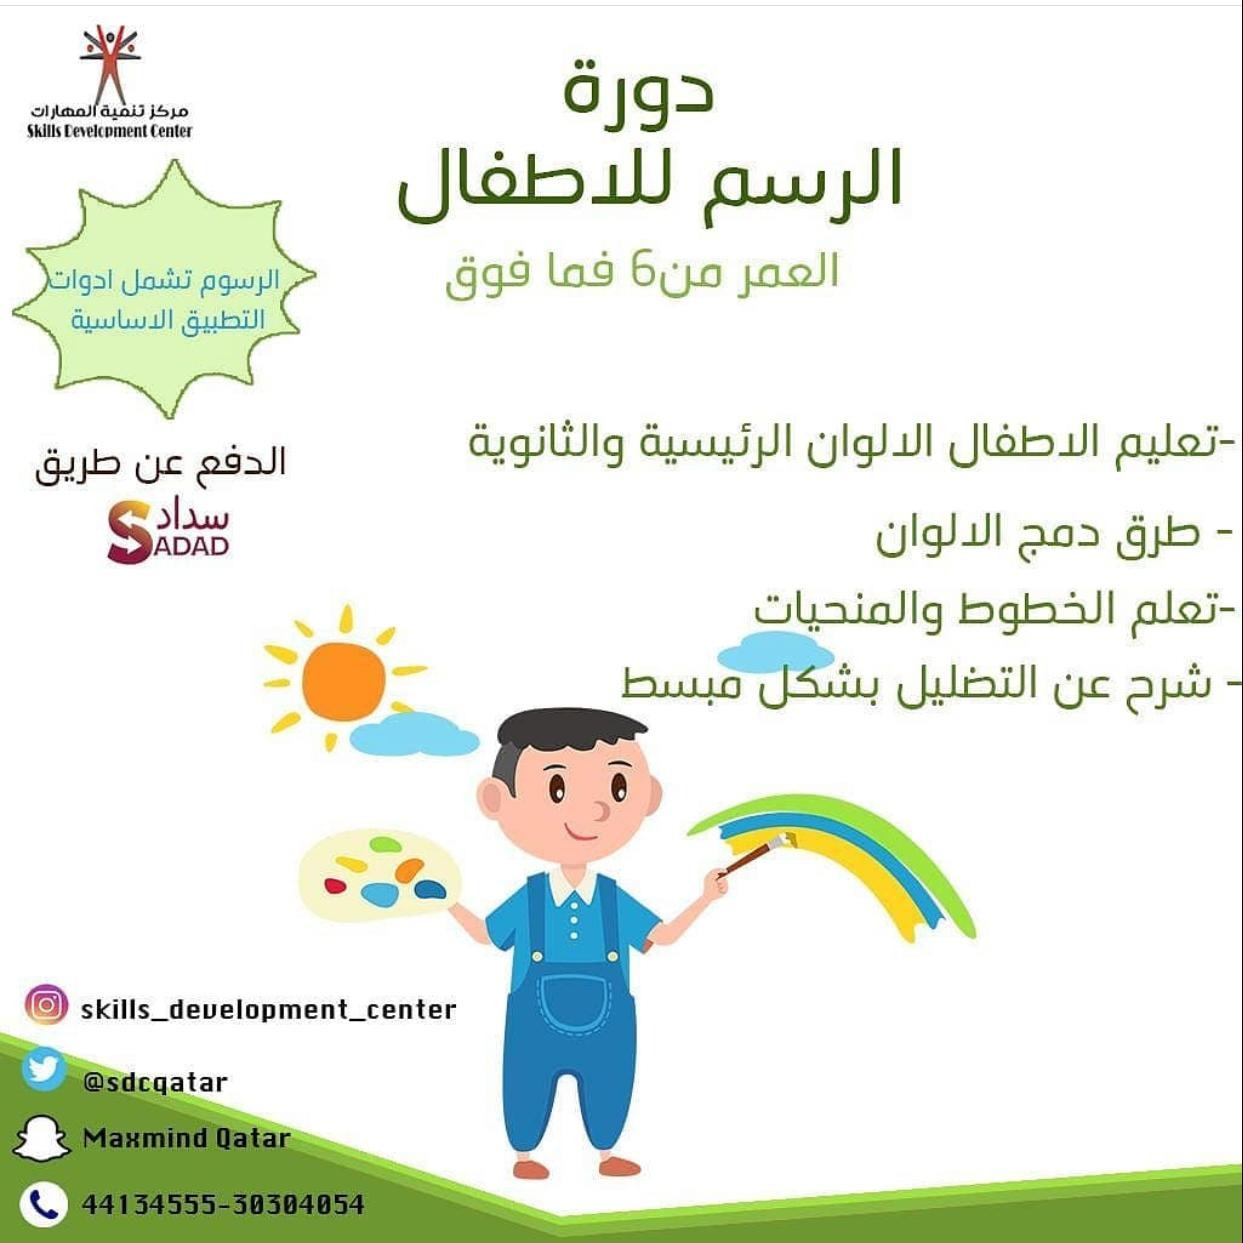 Doha Where & When .. Recreational and educational activities (Sep 24 - 28)